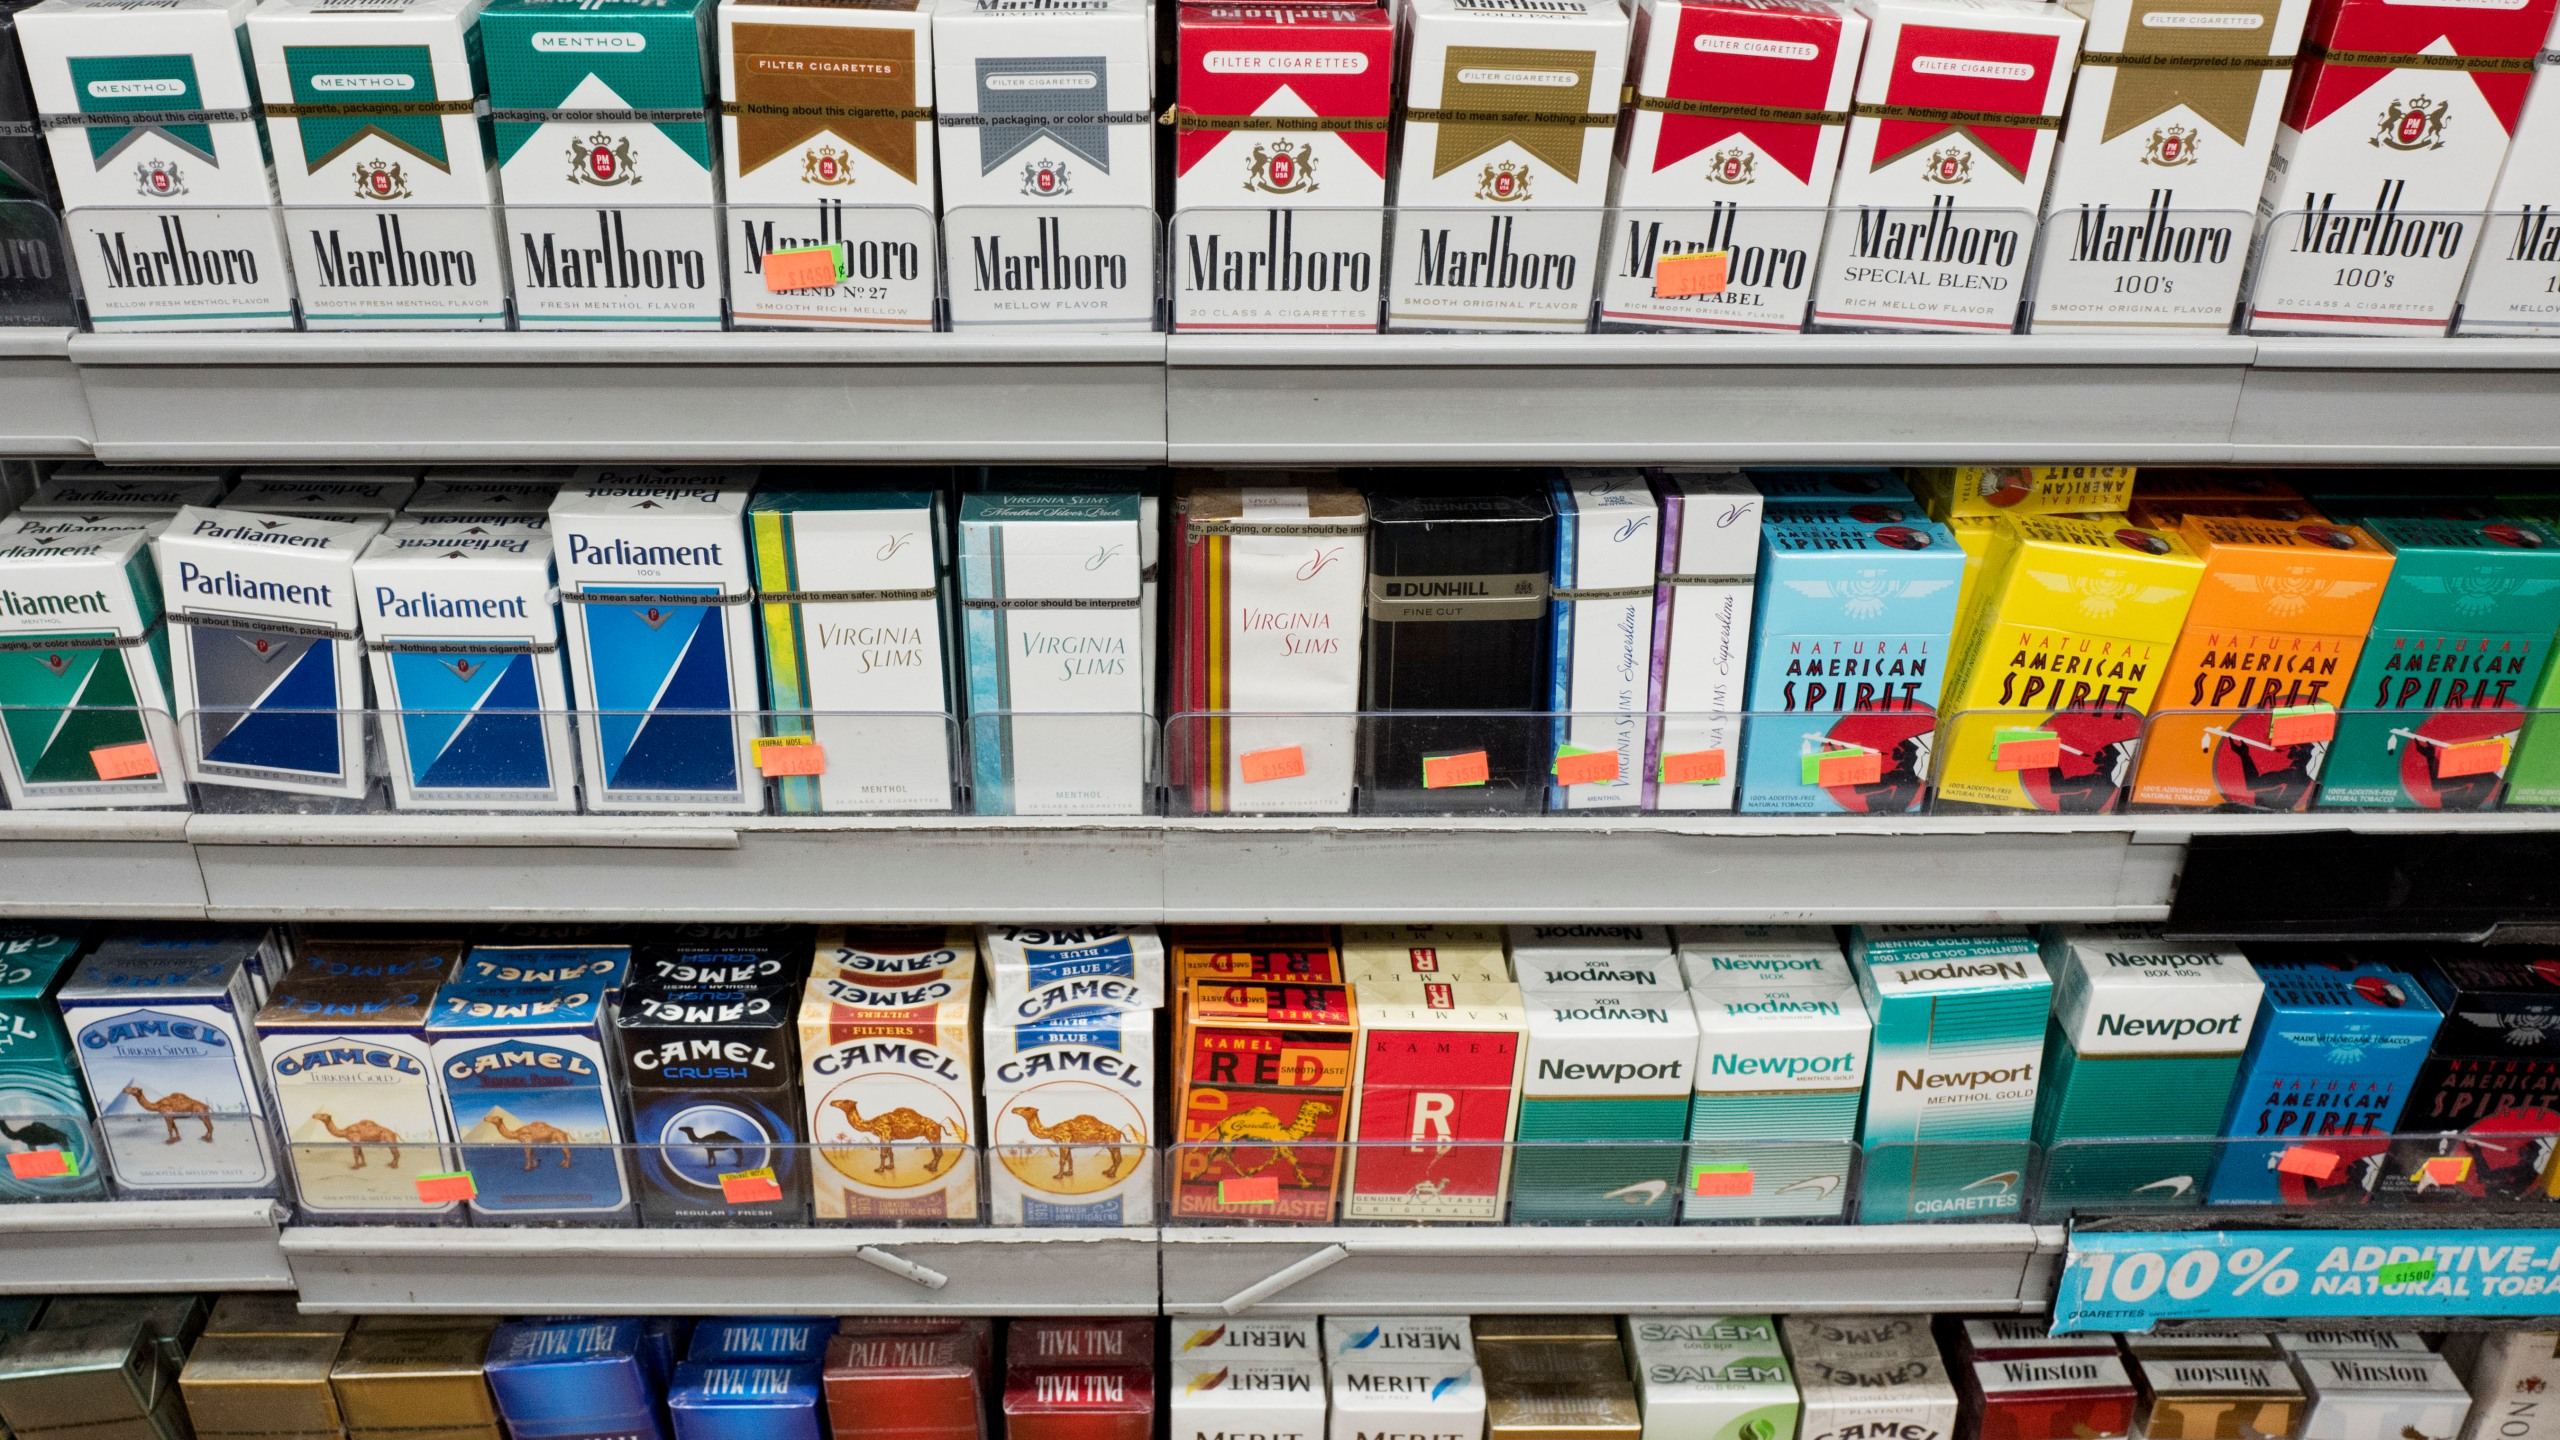 A wall of tobacco products behind the counter